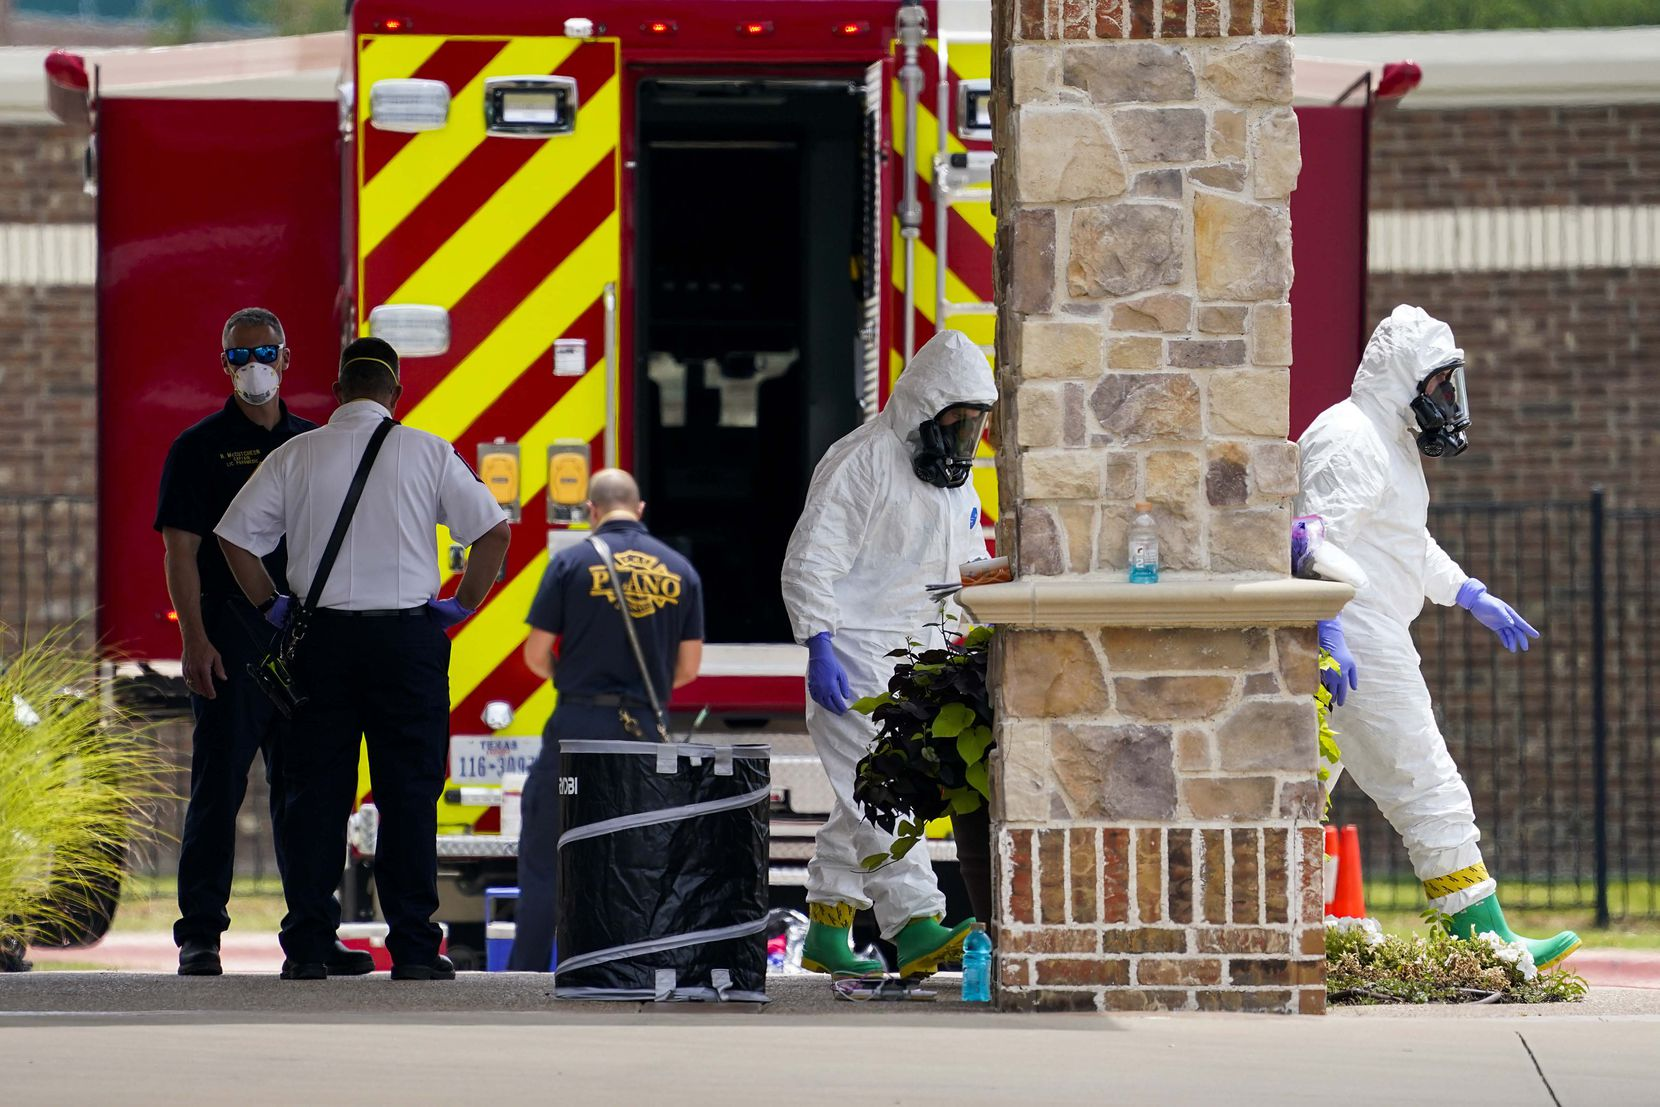 Plano Fire-Rescue officials were at Arbor Hills Memory Care Community on Monday, doing COVID-19 testing, and discovered at least 17 patients who were symptomatic and needed hospitalization, according to a city of Plano spokesman.